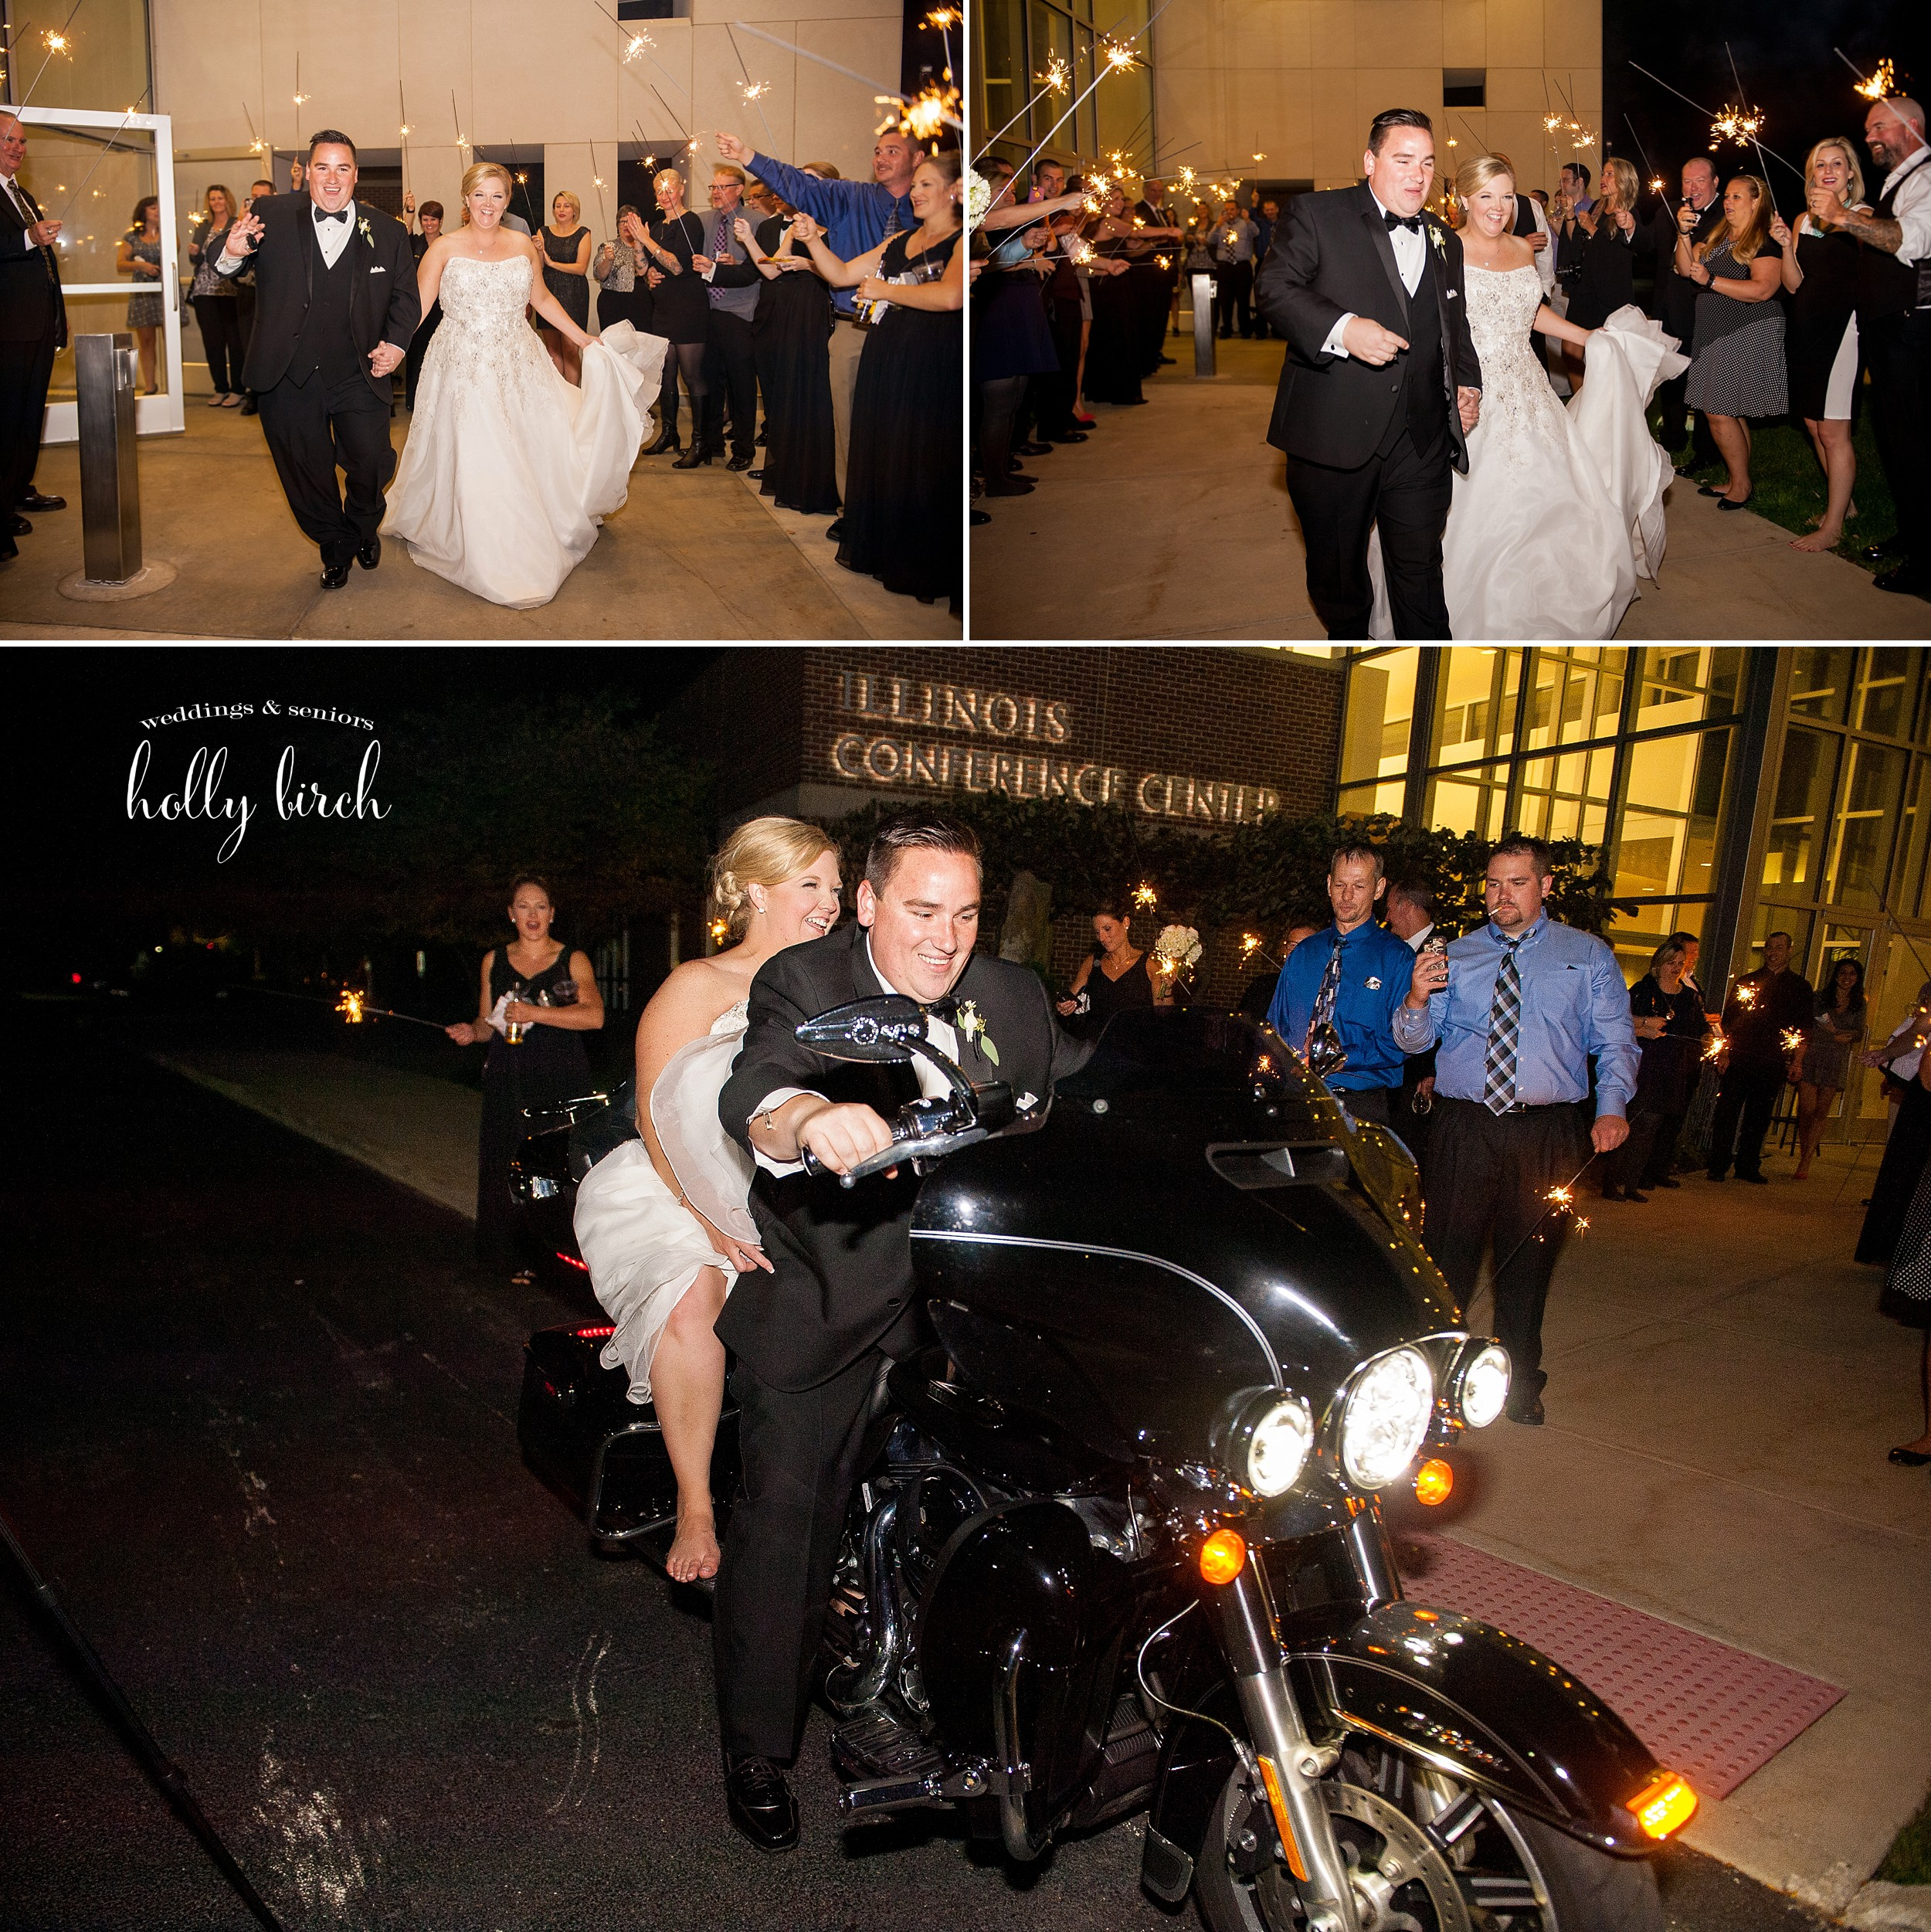 sparkler exit and motorcycle getaway